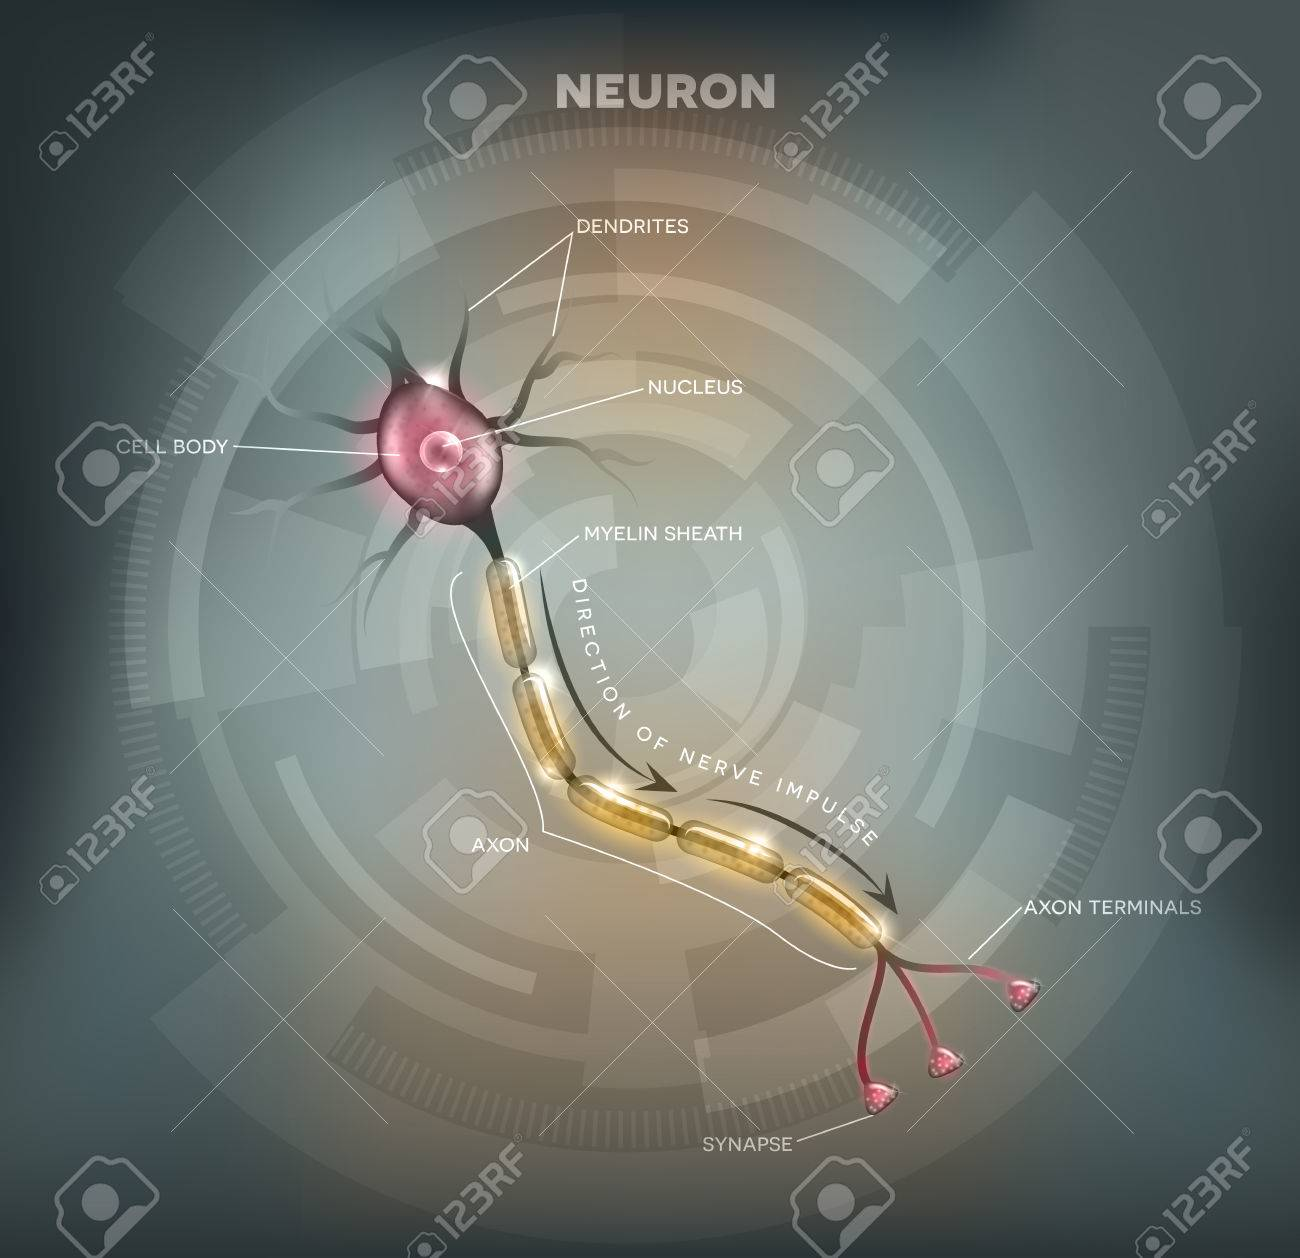 hight resolution of labeled diagram of the neuron nerve cell that is the main part of the nervous